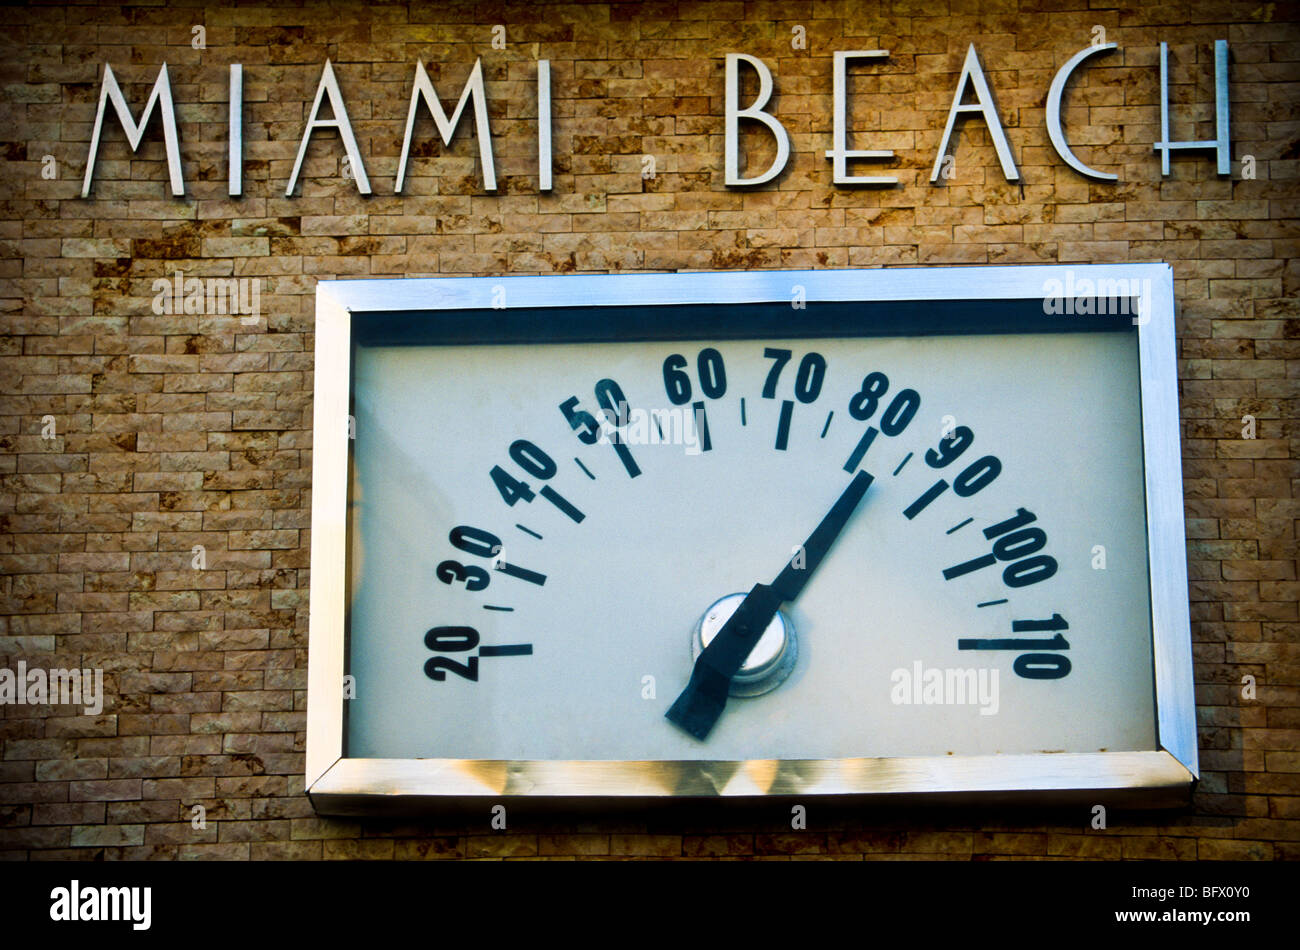 Temperature shown on the thermometer at South Beach in Miami Beach, Florida. - Stock Image